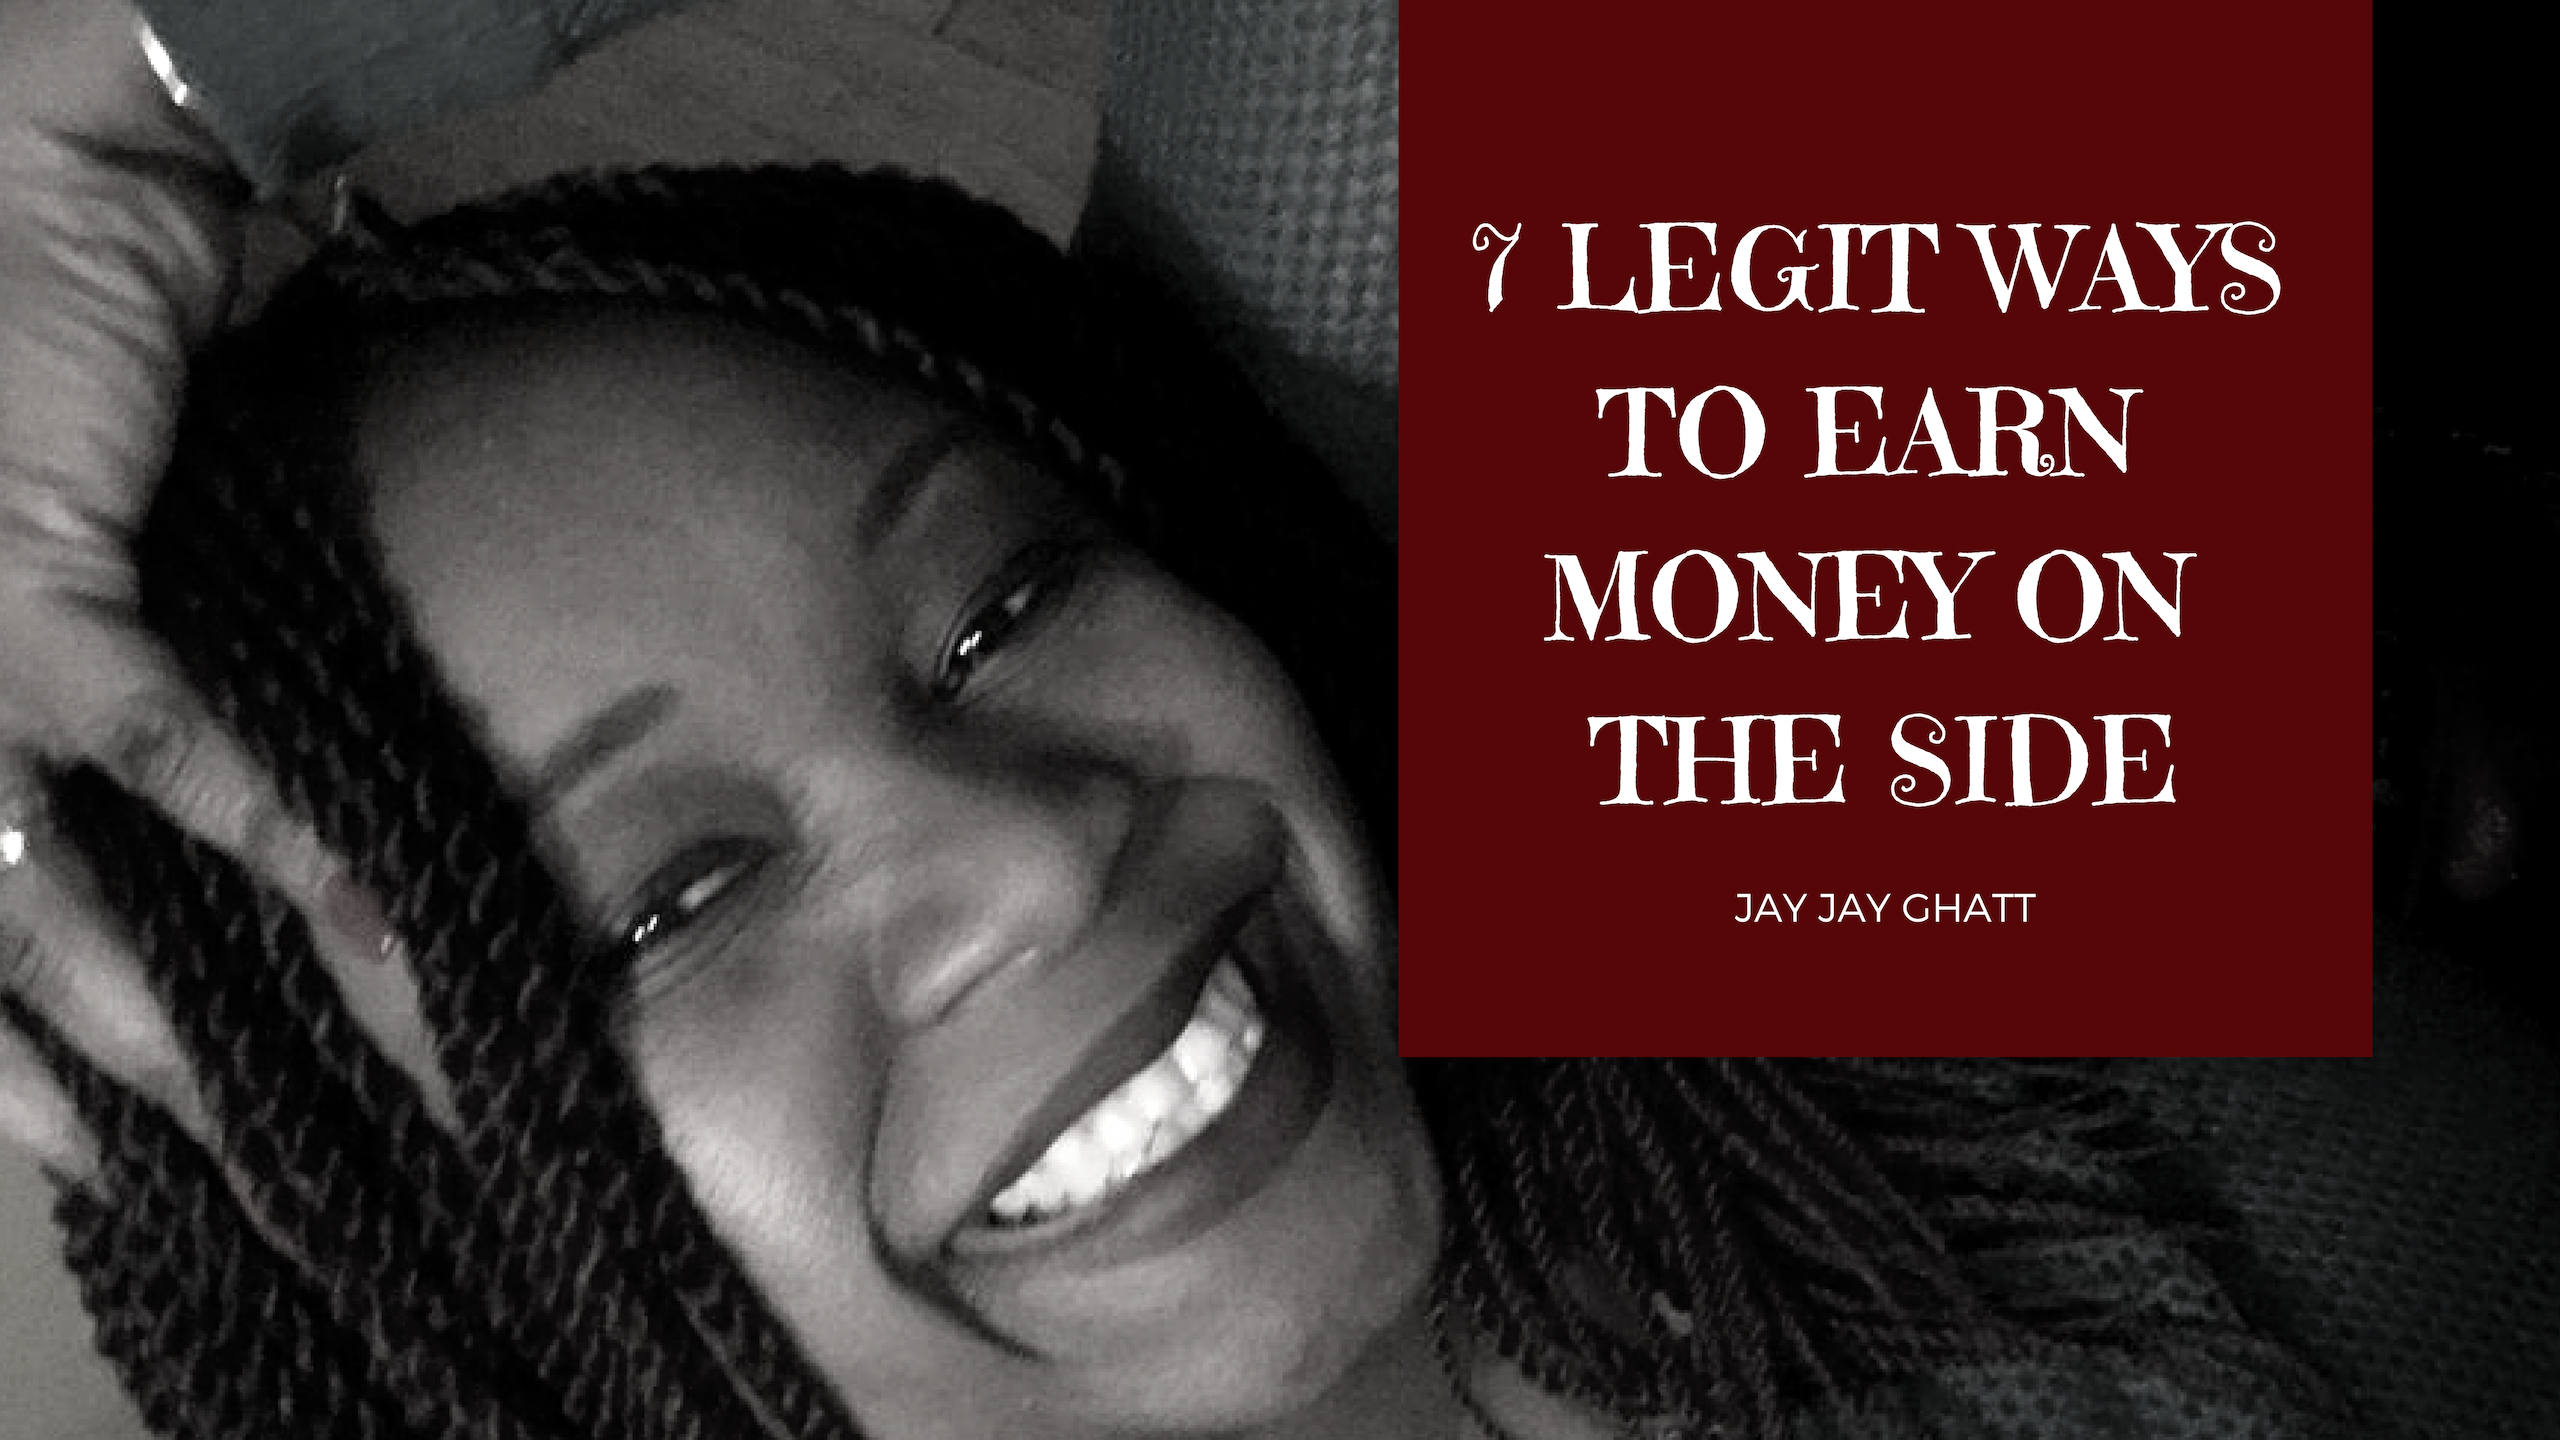 Just Released: 7 Legit Ways to Earn Money On the Side {Video}